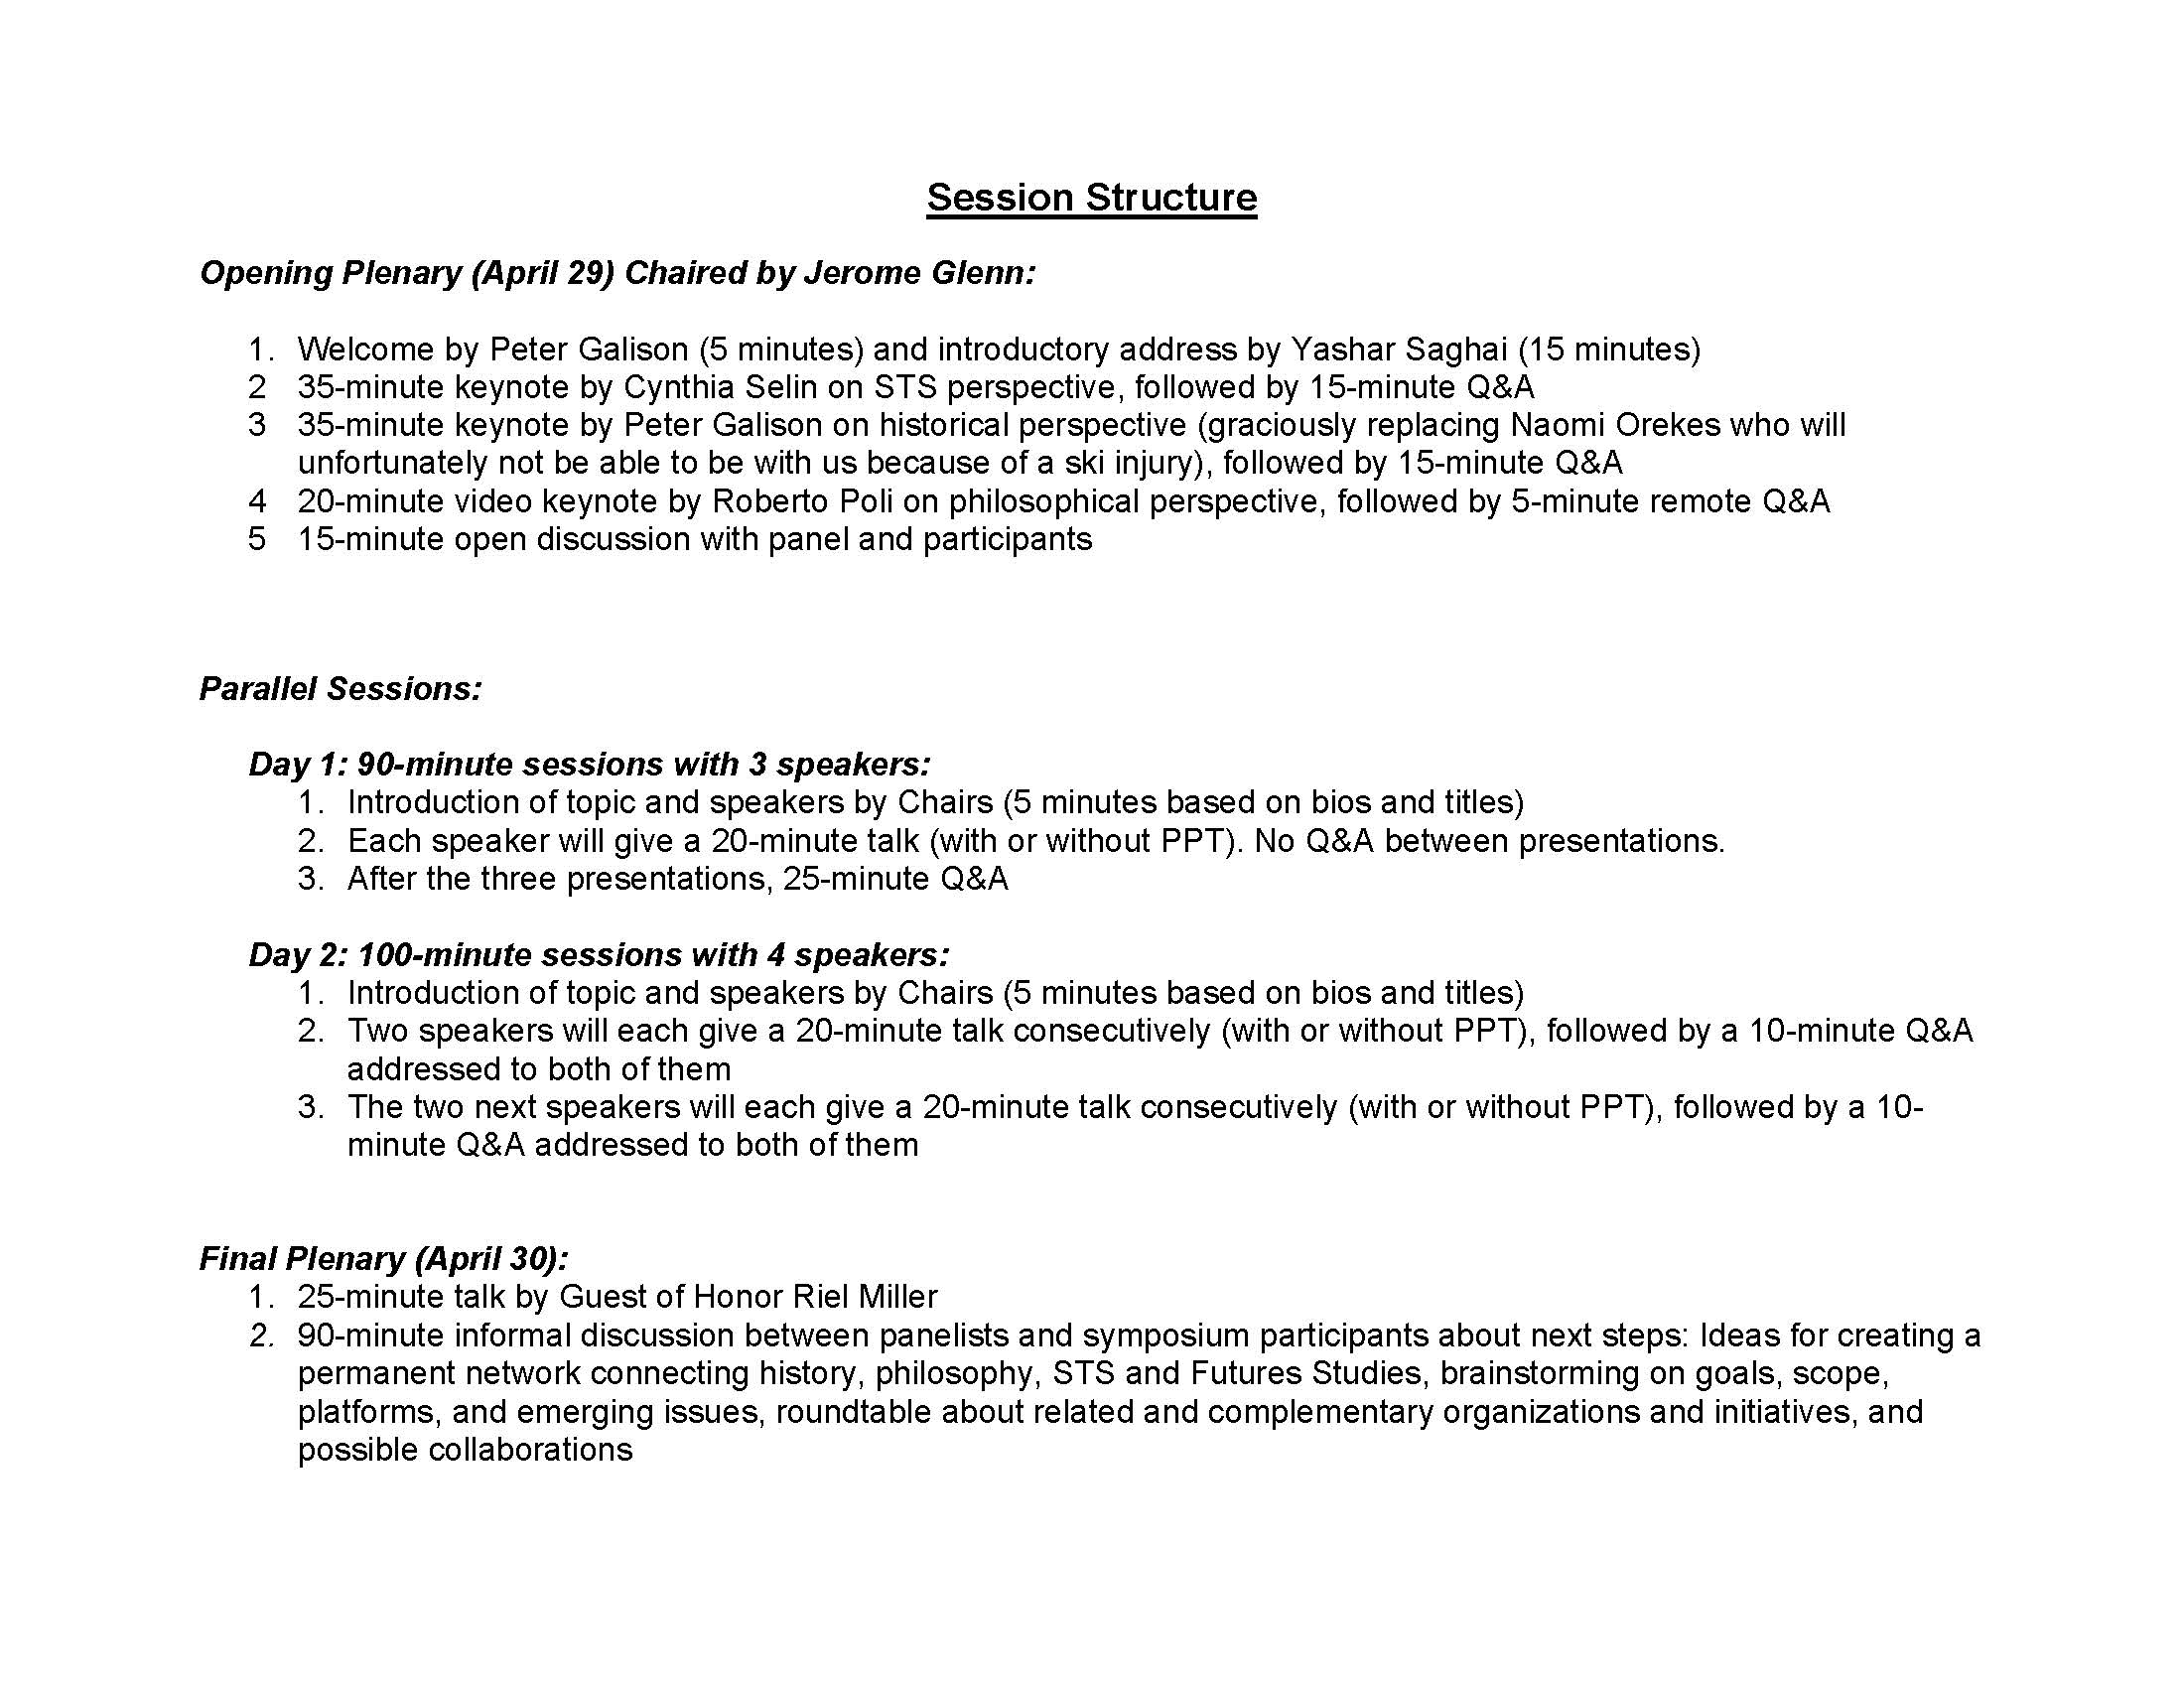 GwF Symposium Schedule At a Glance_Page_6.jpg